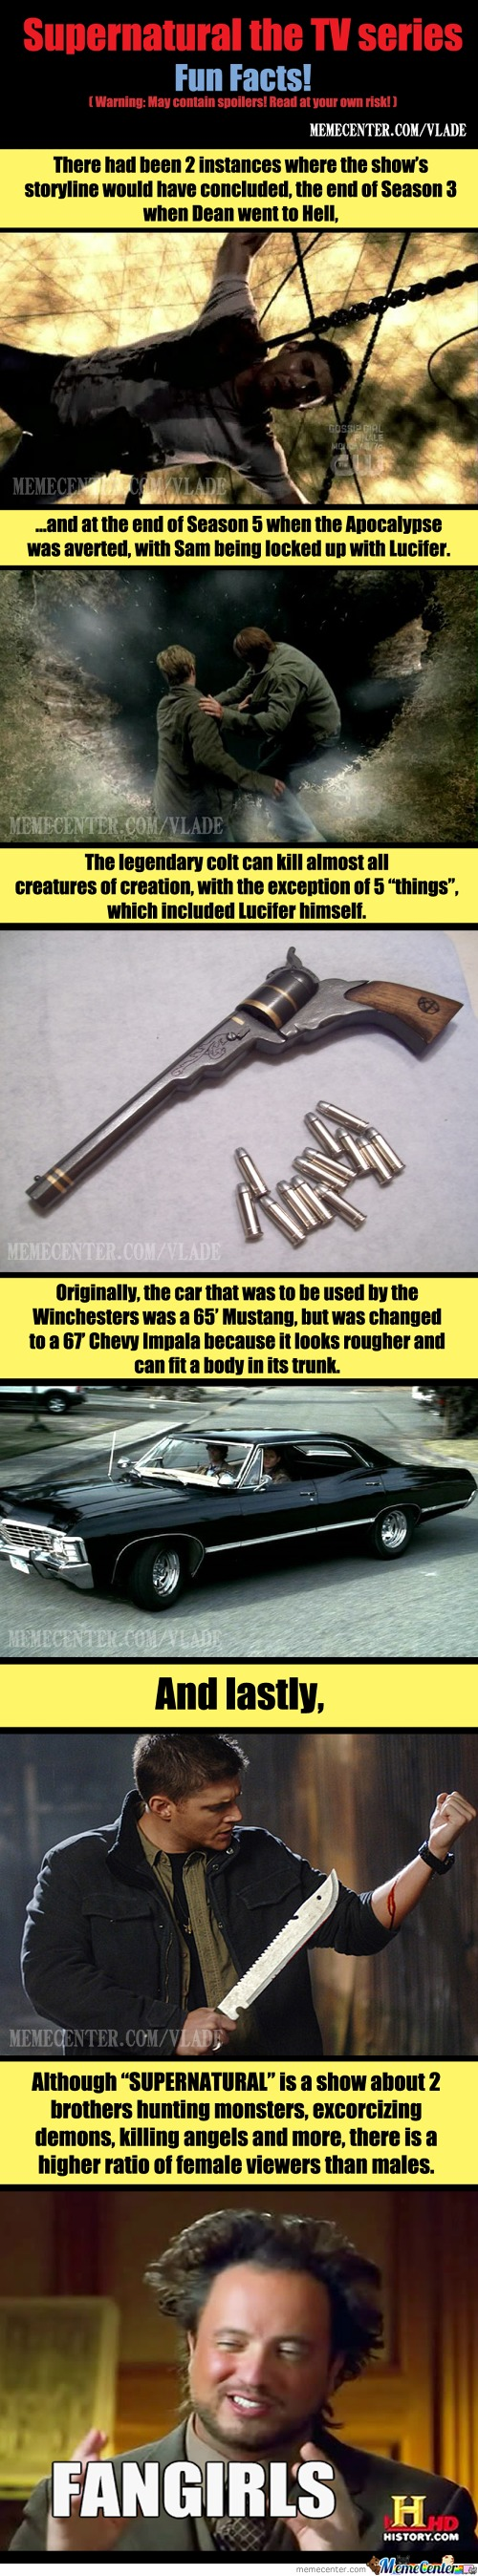 Supernatural Fun Facts!